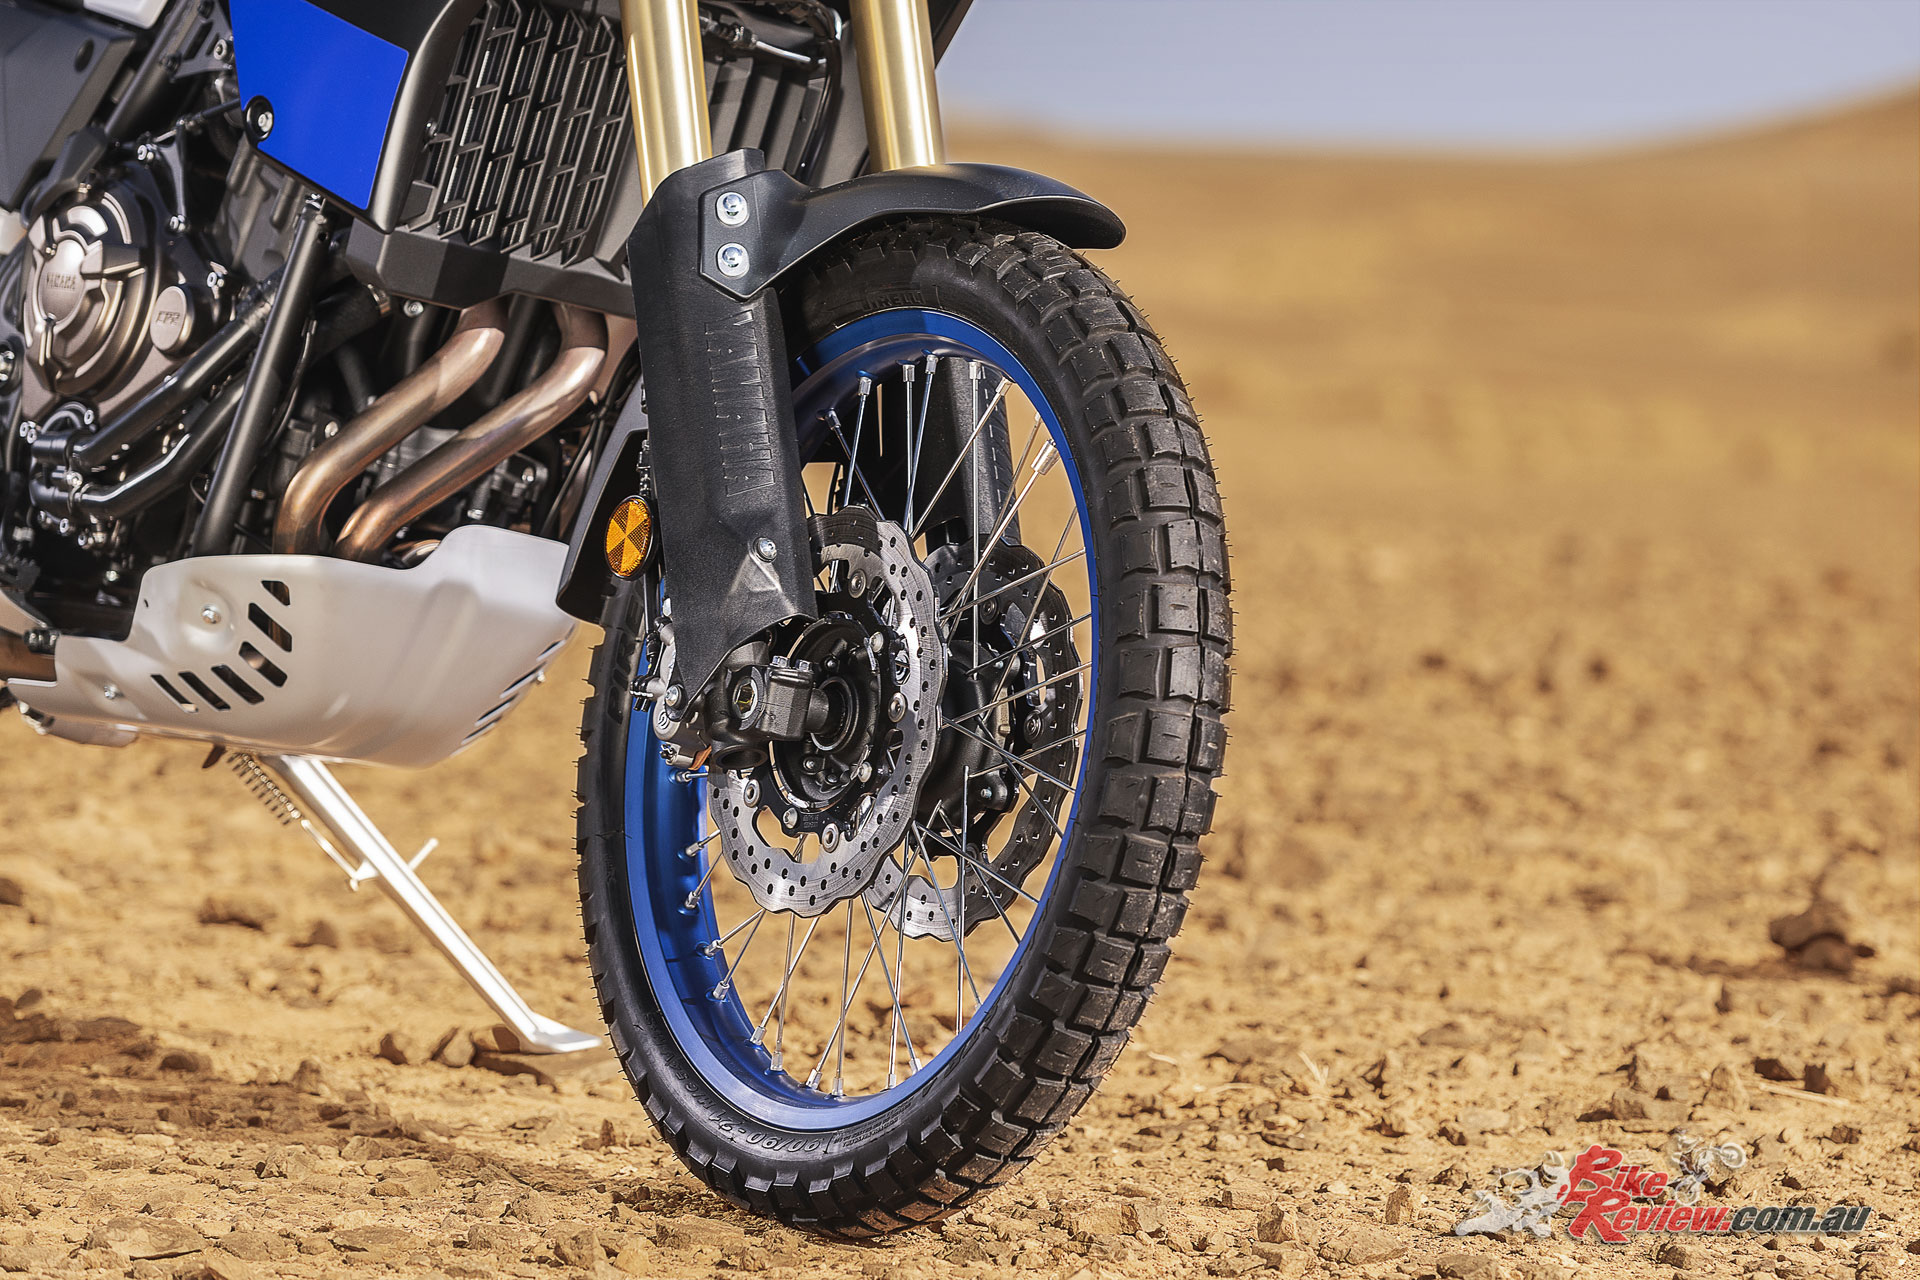 2019 Yamaha Tenere 700 - Spoked wheels speak to the Tenere 700s off-road aims